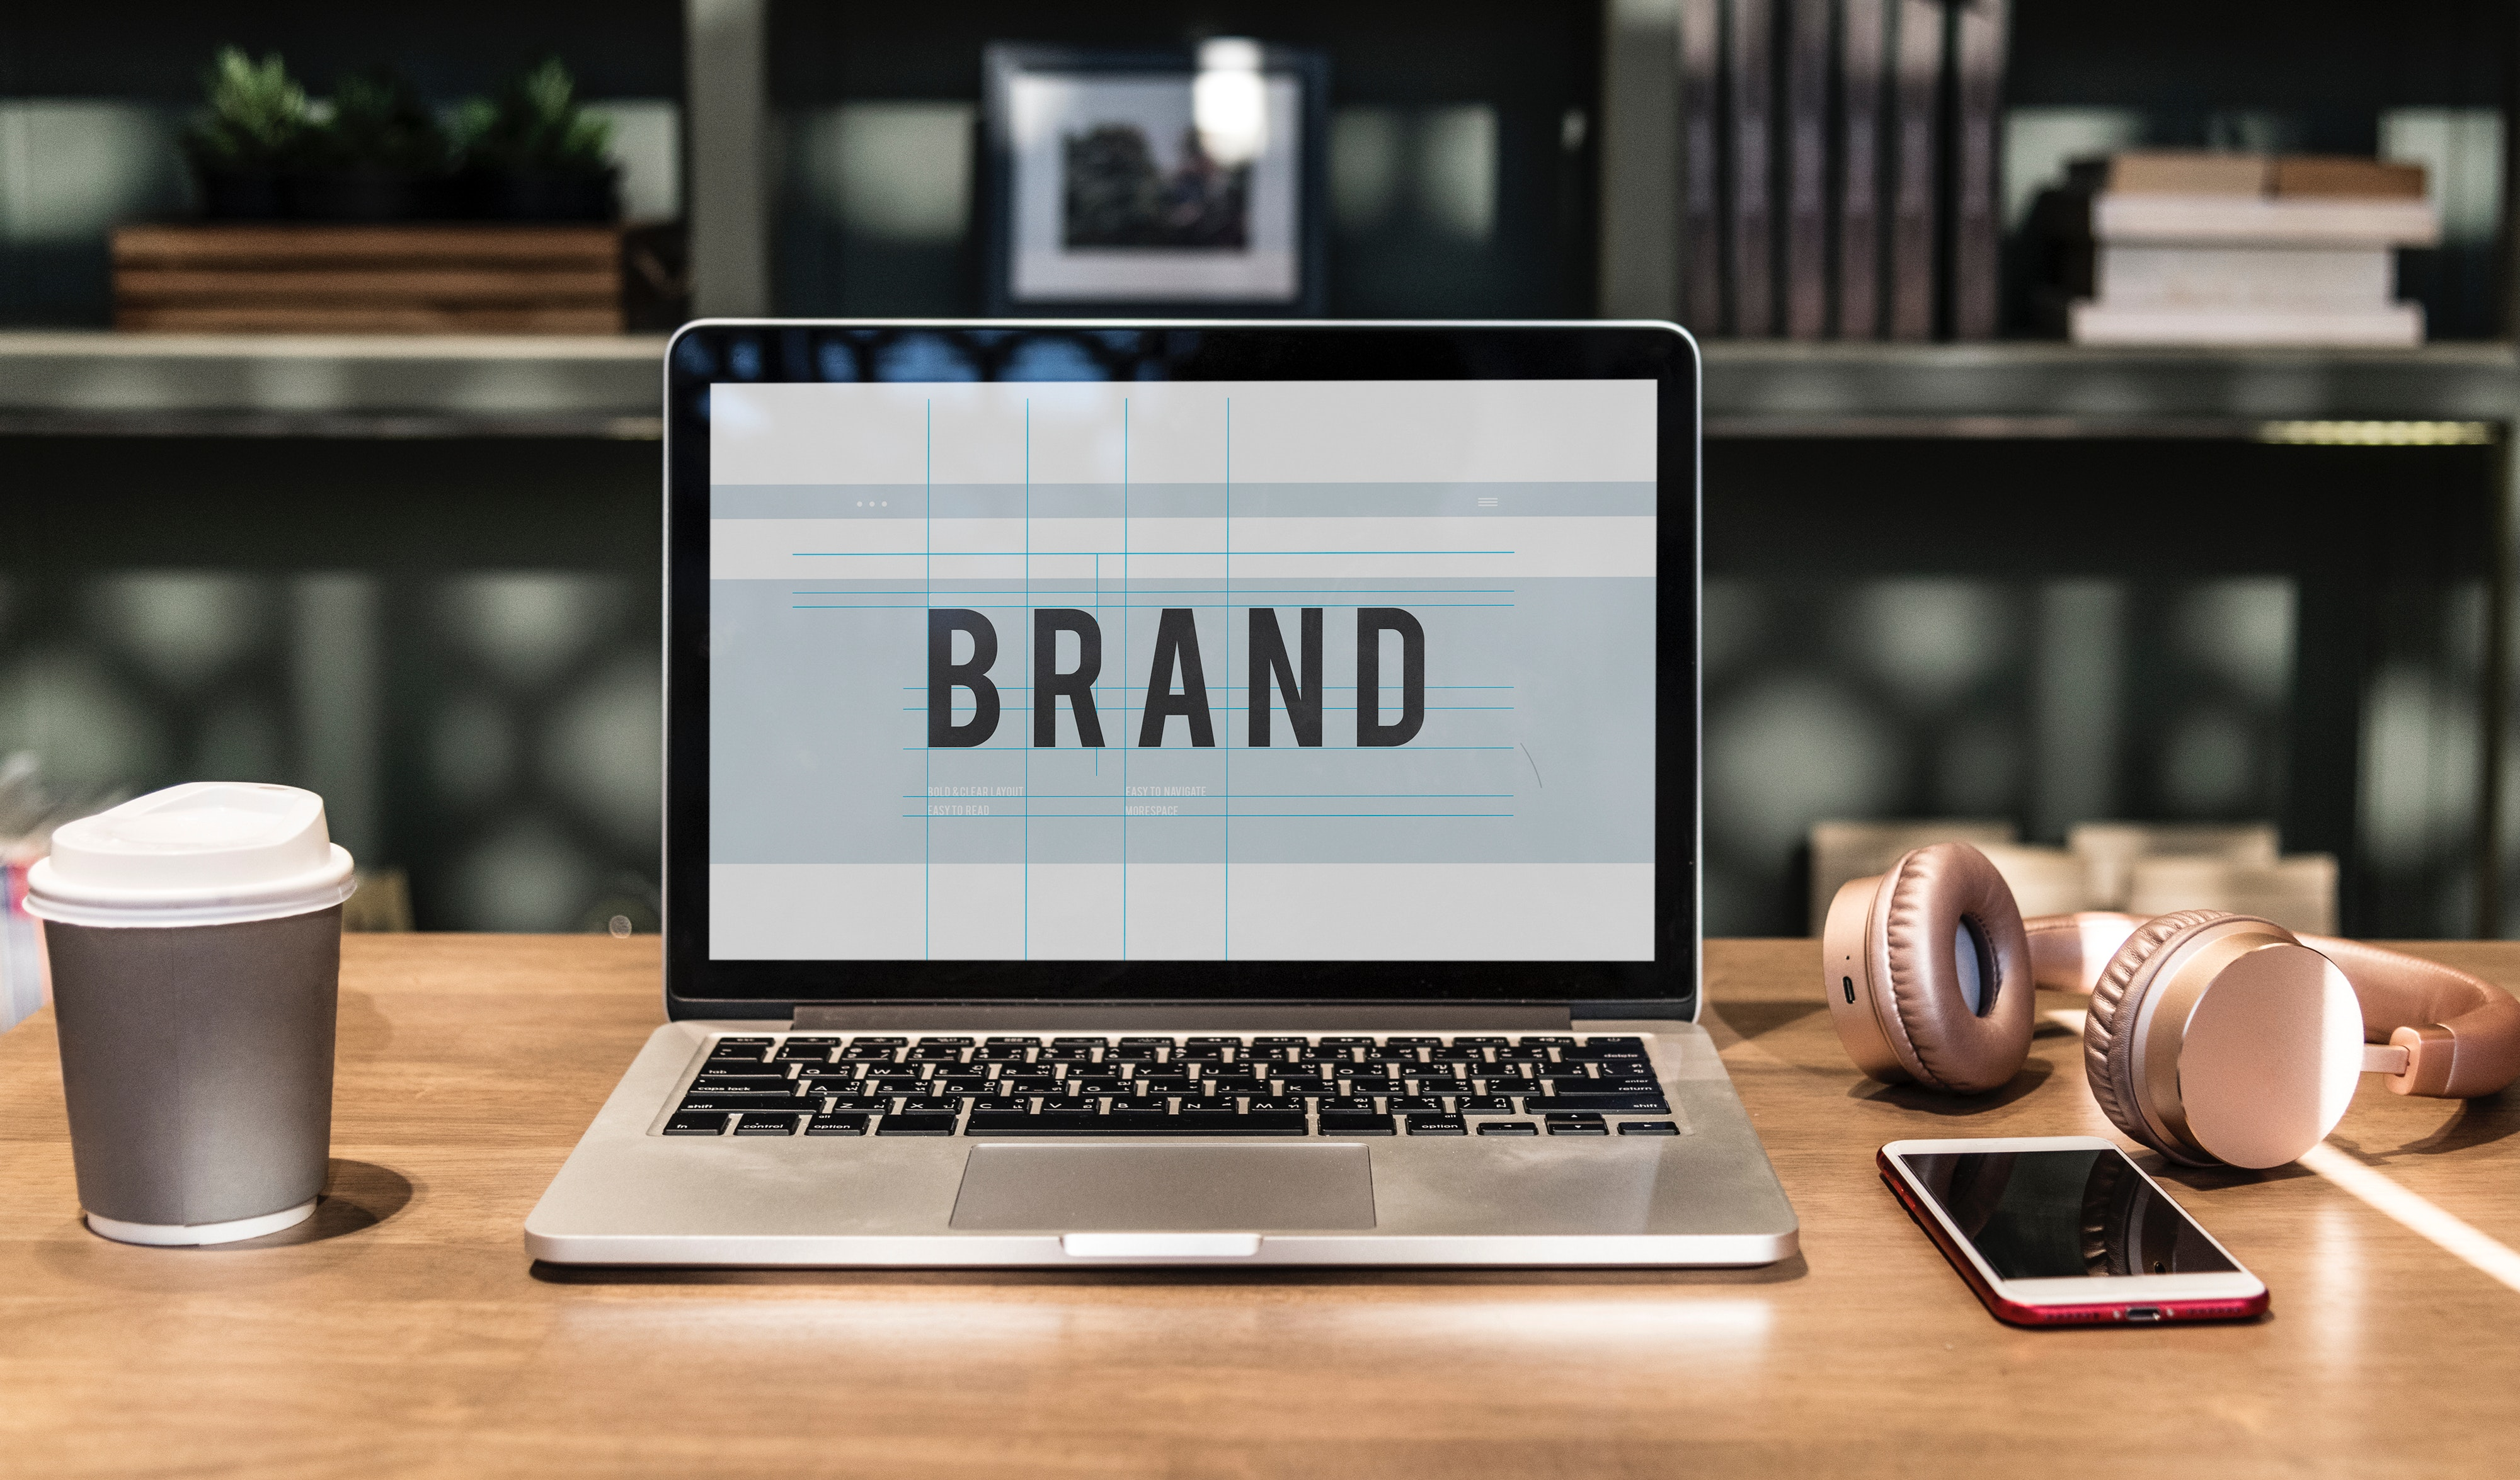 advertising brand branding 1449081 - How to Create Strong Brand Positioning in Your Market